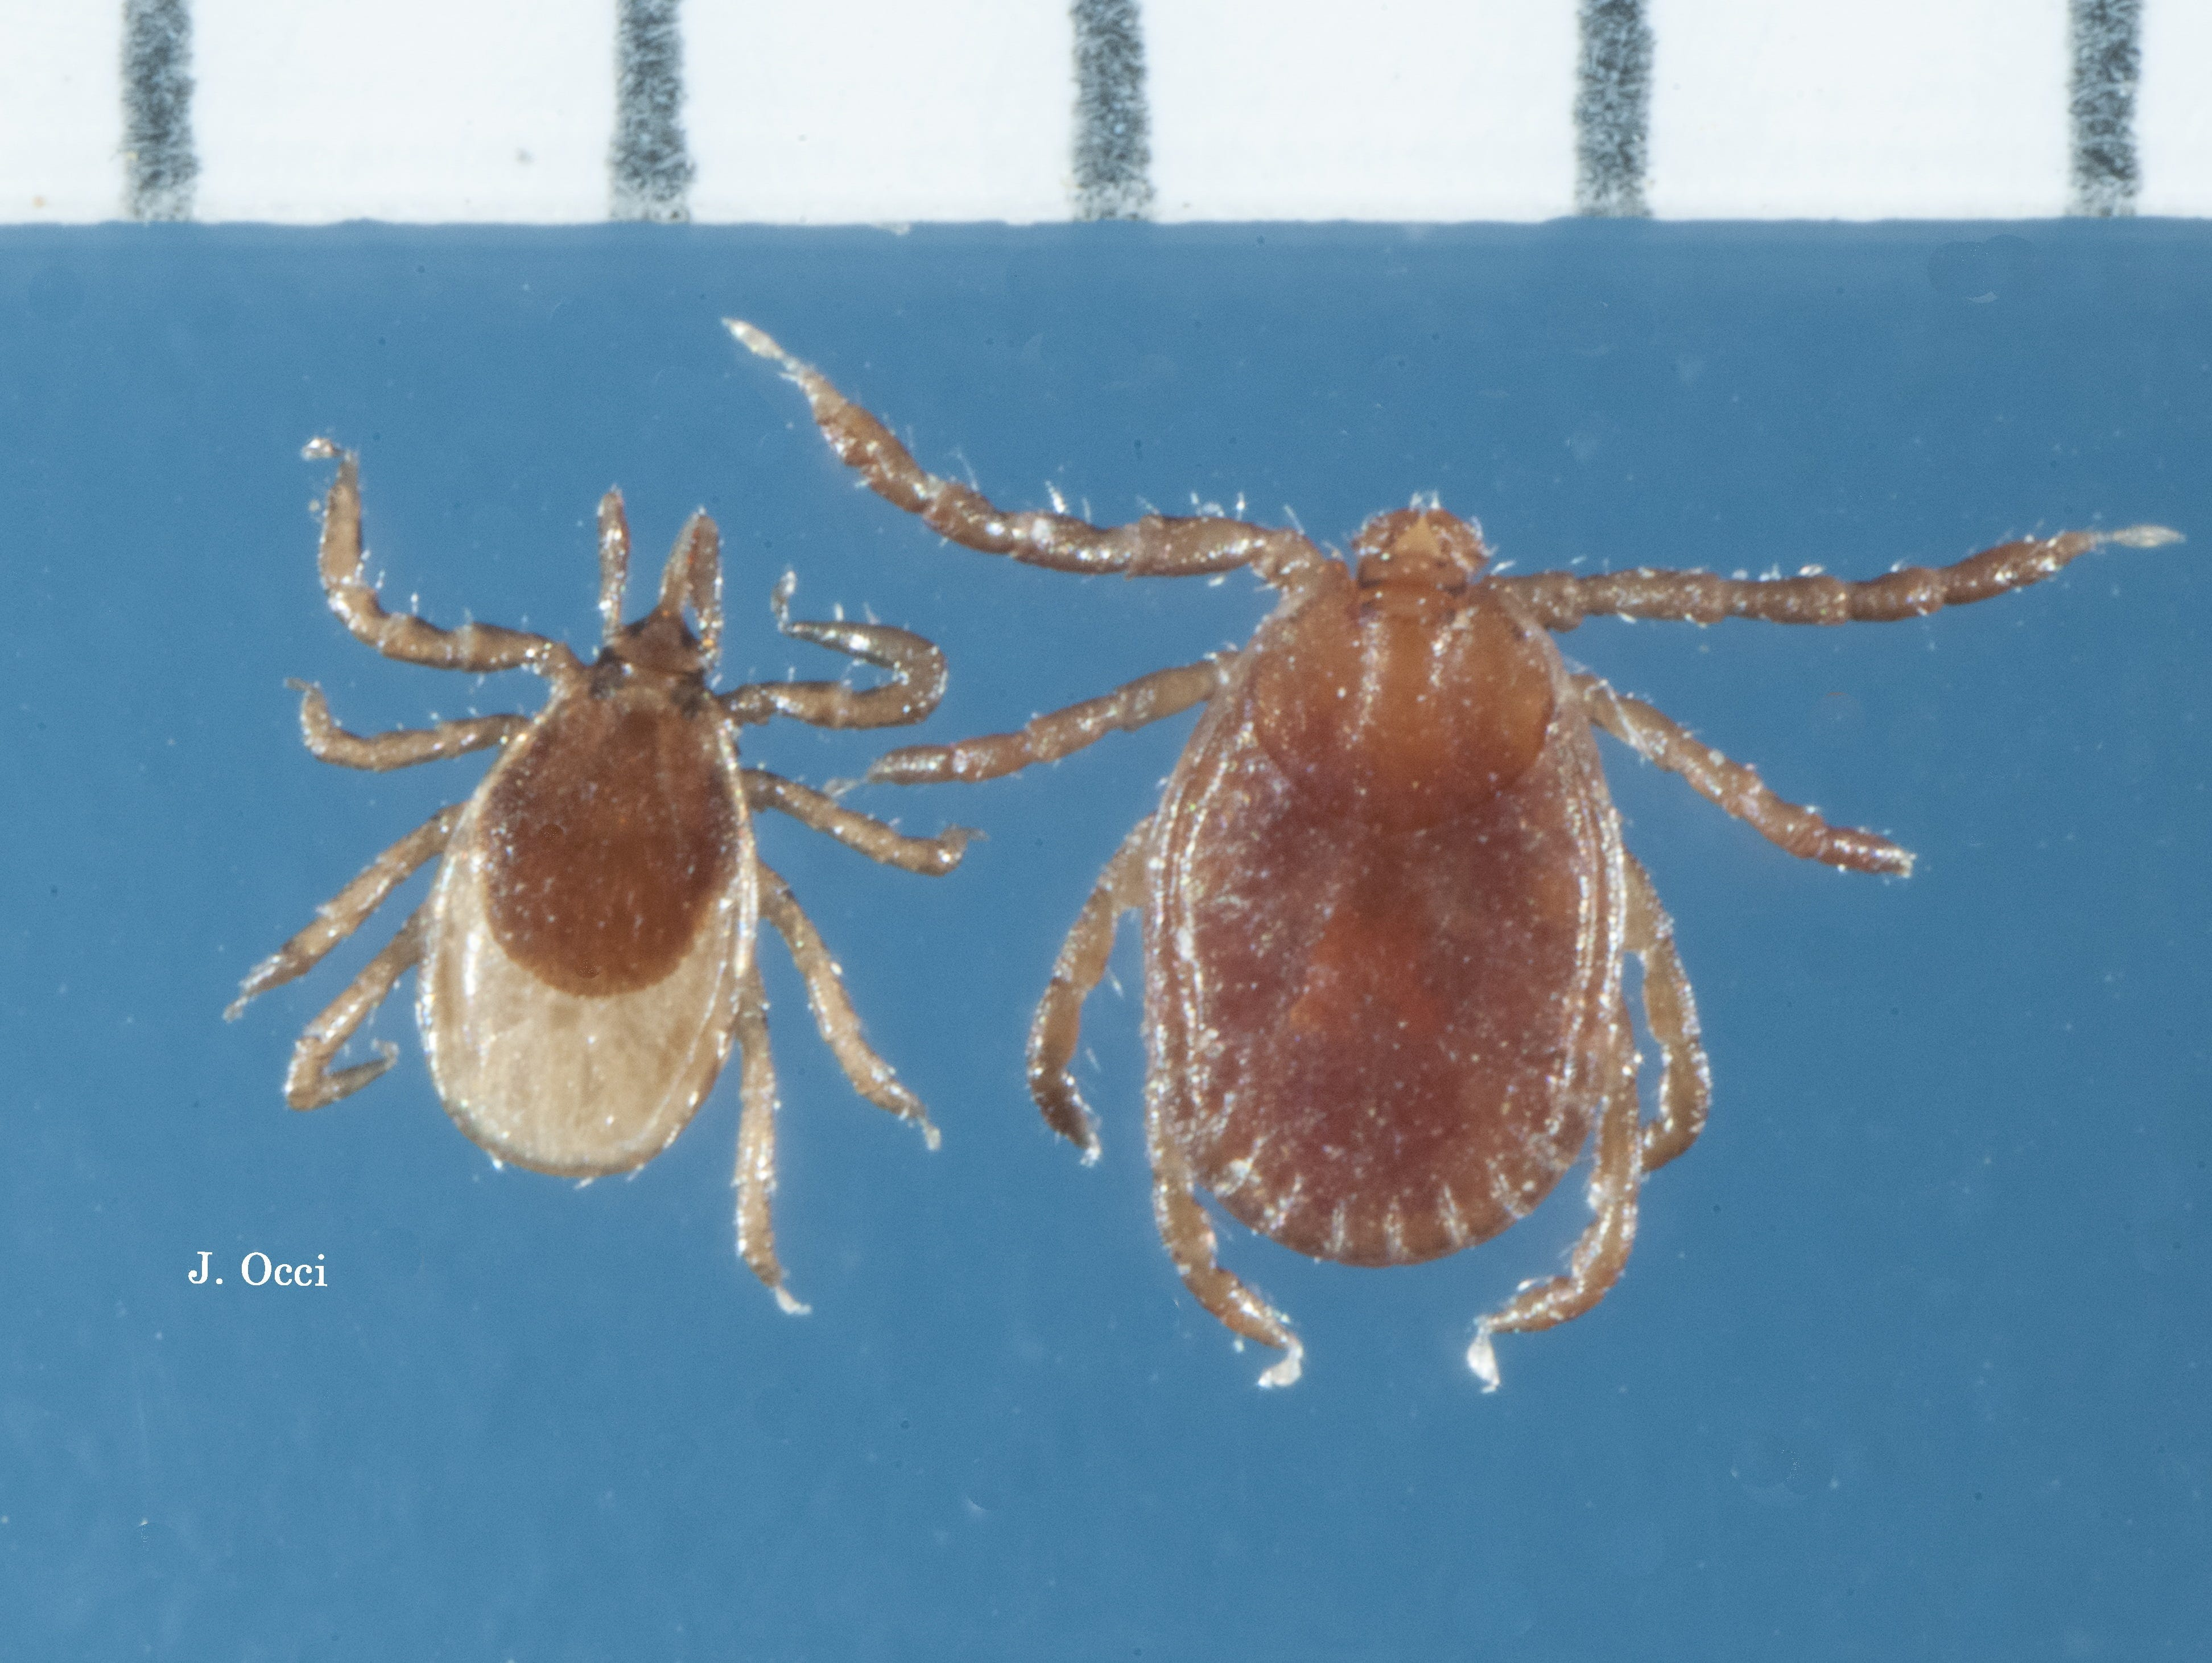 tick nymph images